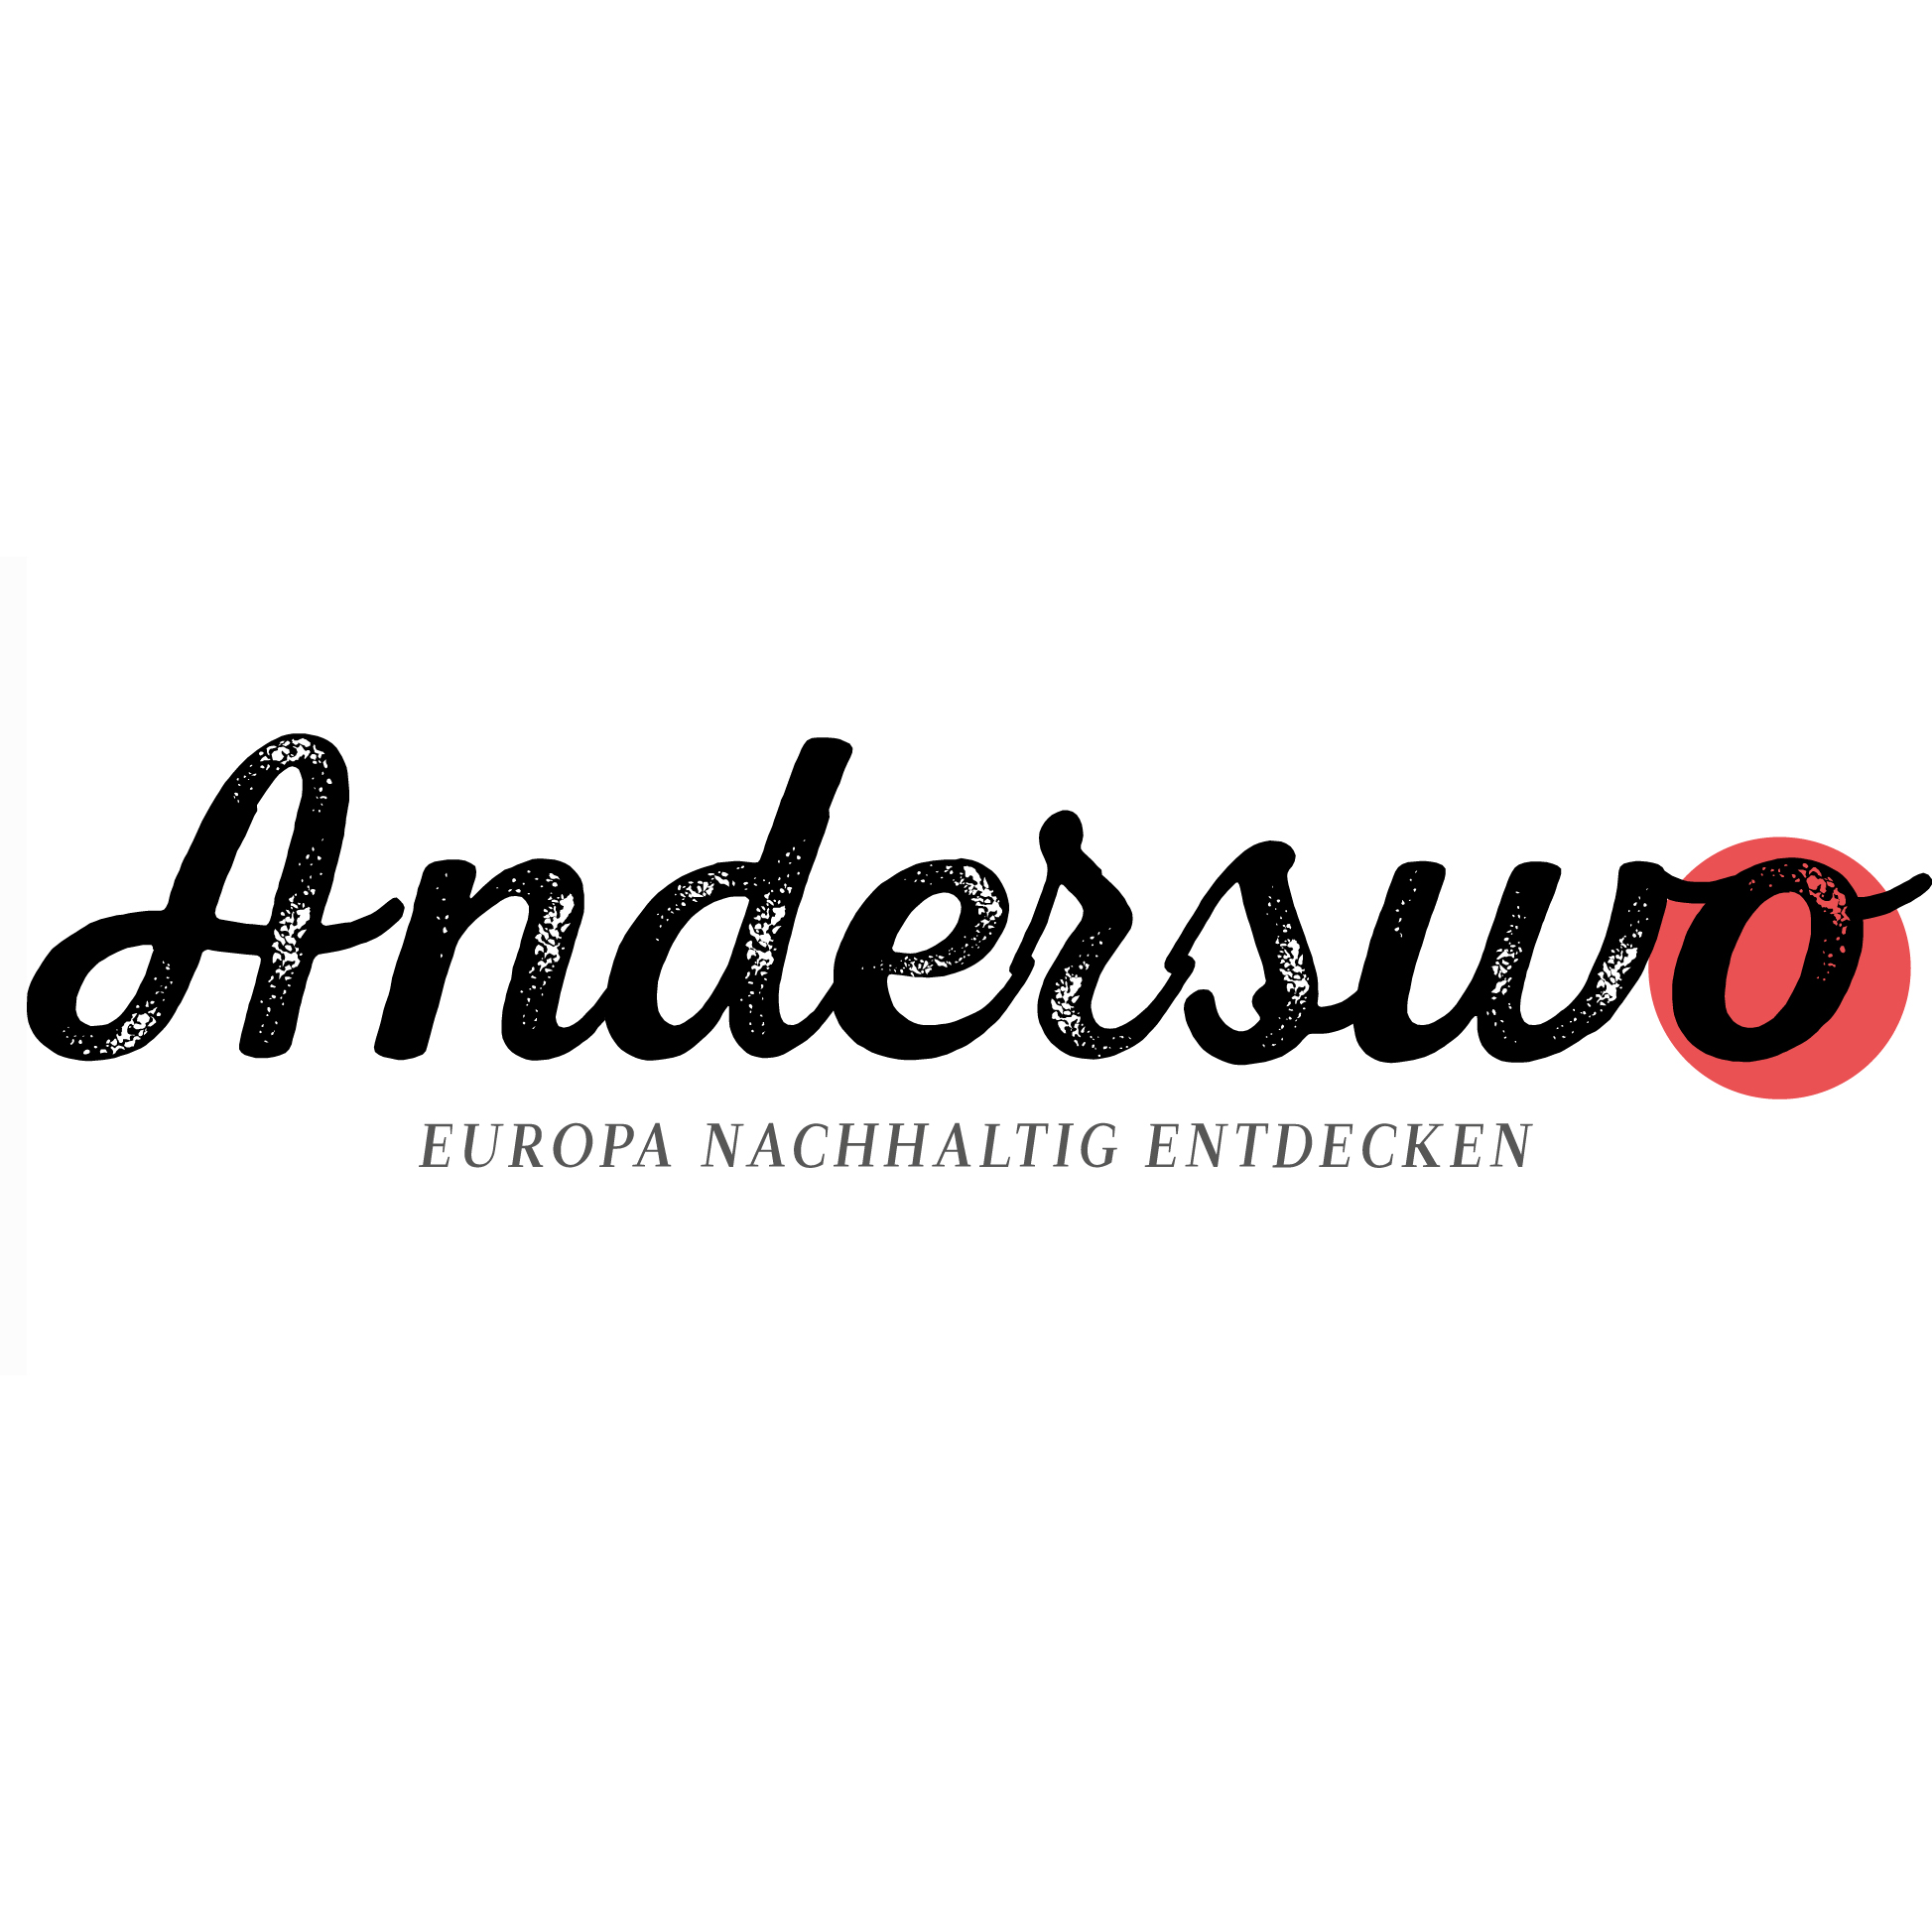 Anderswo - German Magazine that write about Cami de Ronda® Hiking Route